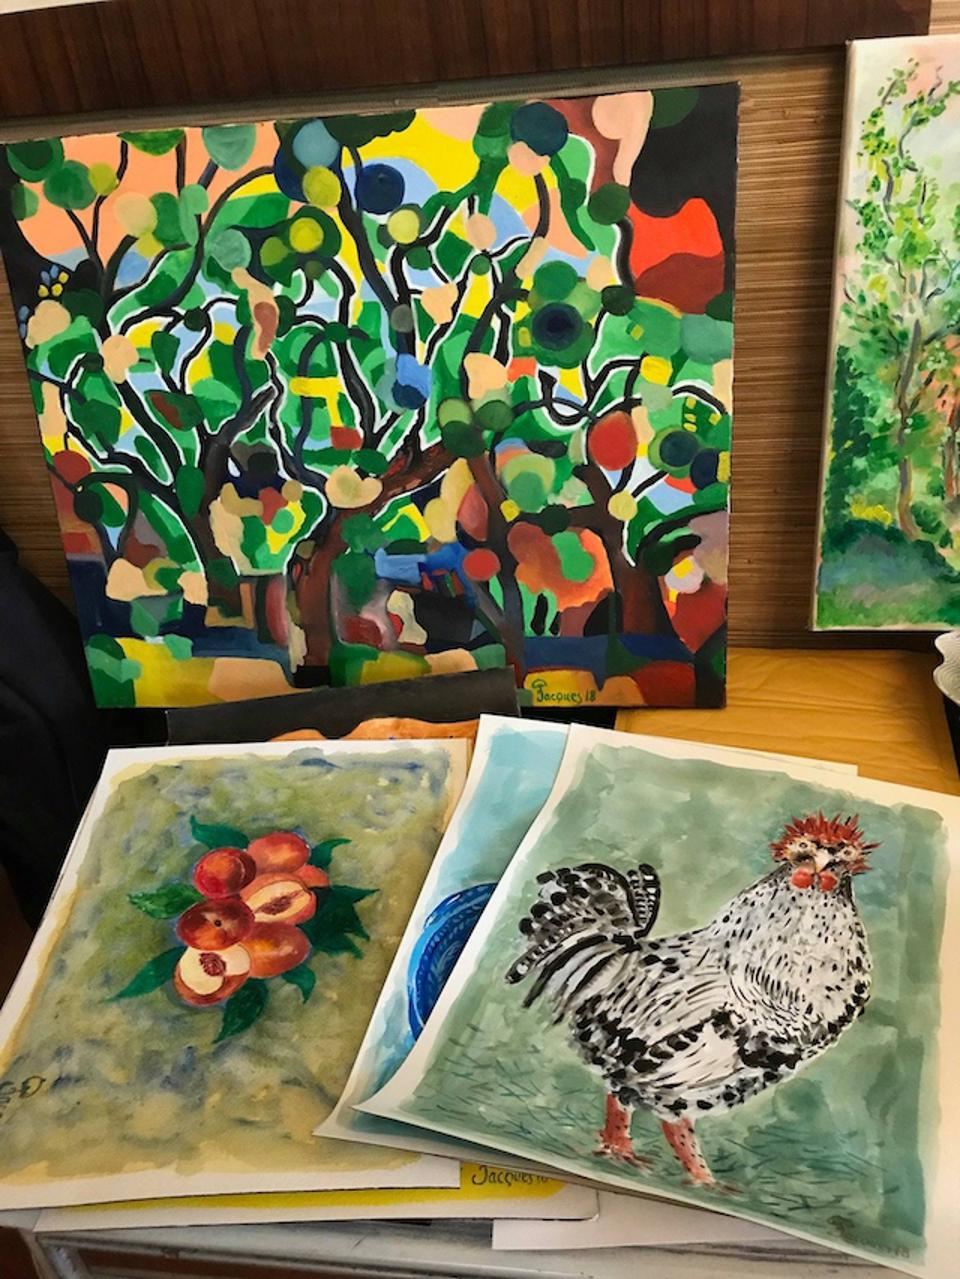 Chef Pepin's artwork is both abstract and representational